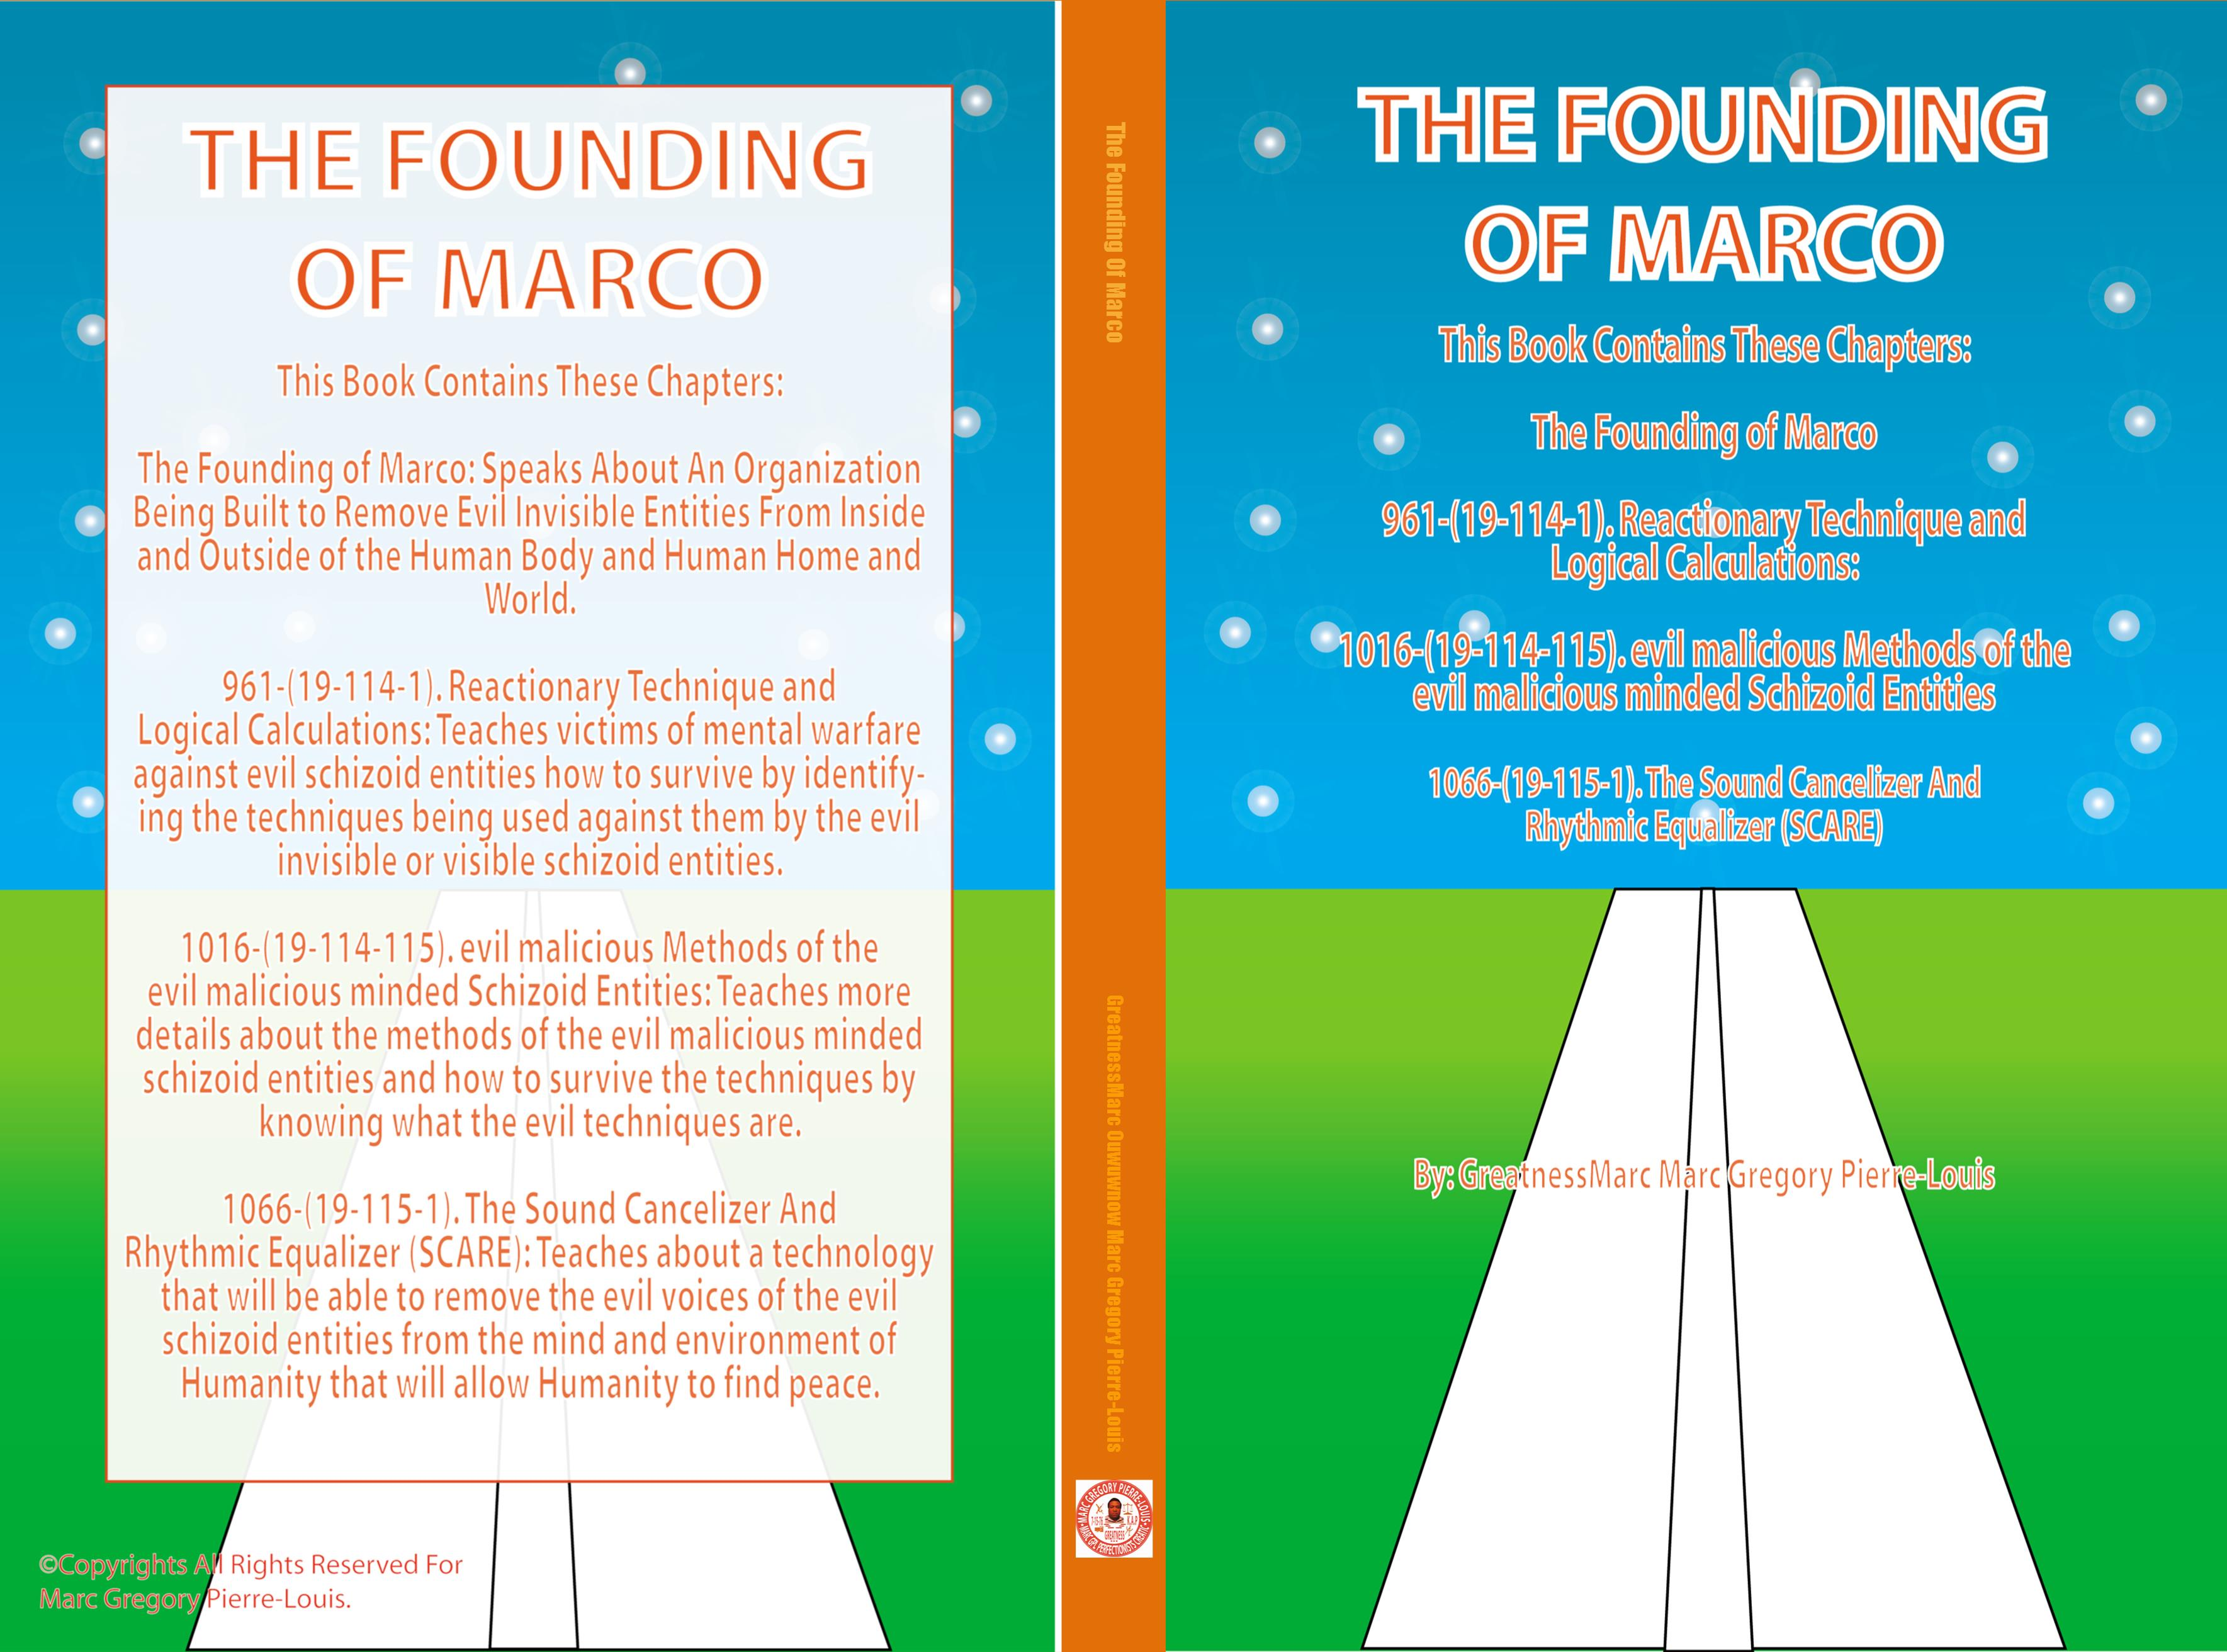 The Founding Of Marco cover image